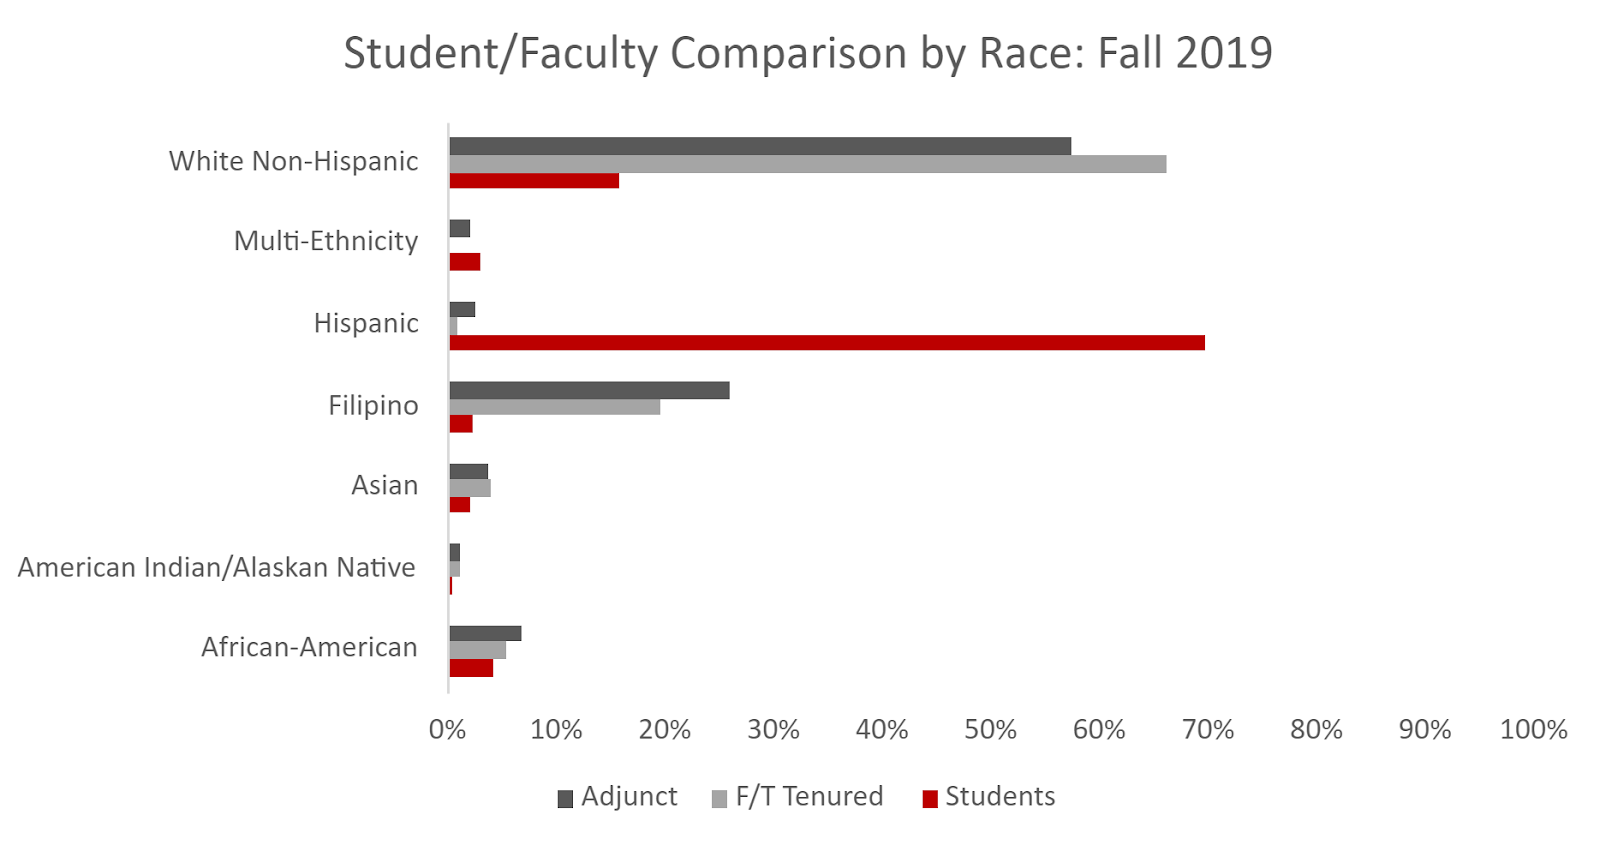 Student/Faculty Comparison by Race bar chart shows adjunct and full-time faculty predominantly white non-hispanic.